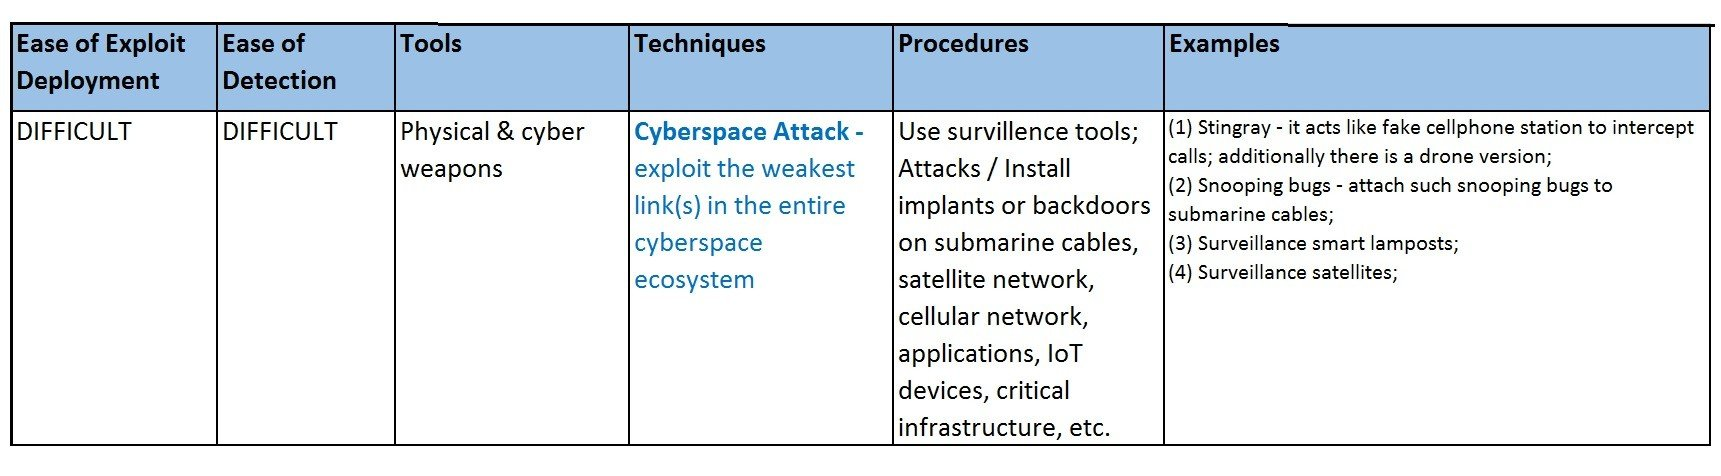 Cyberspace Attack - Exploit the weakest link in the entire cyberspace ecosystem